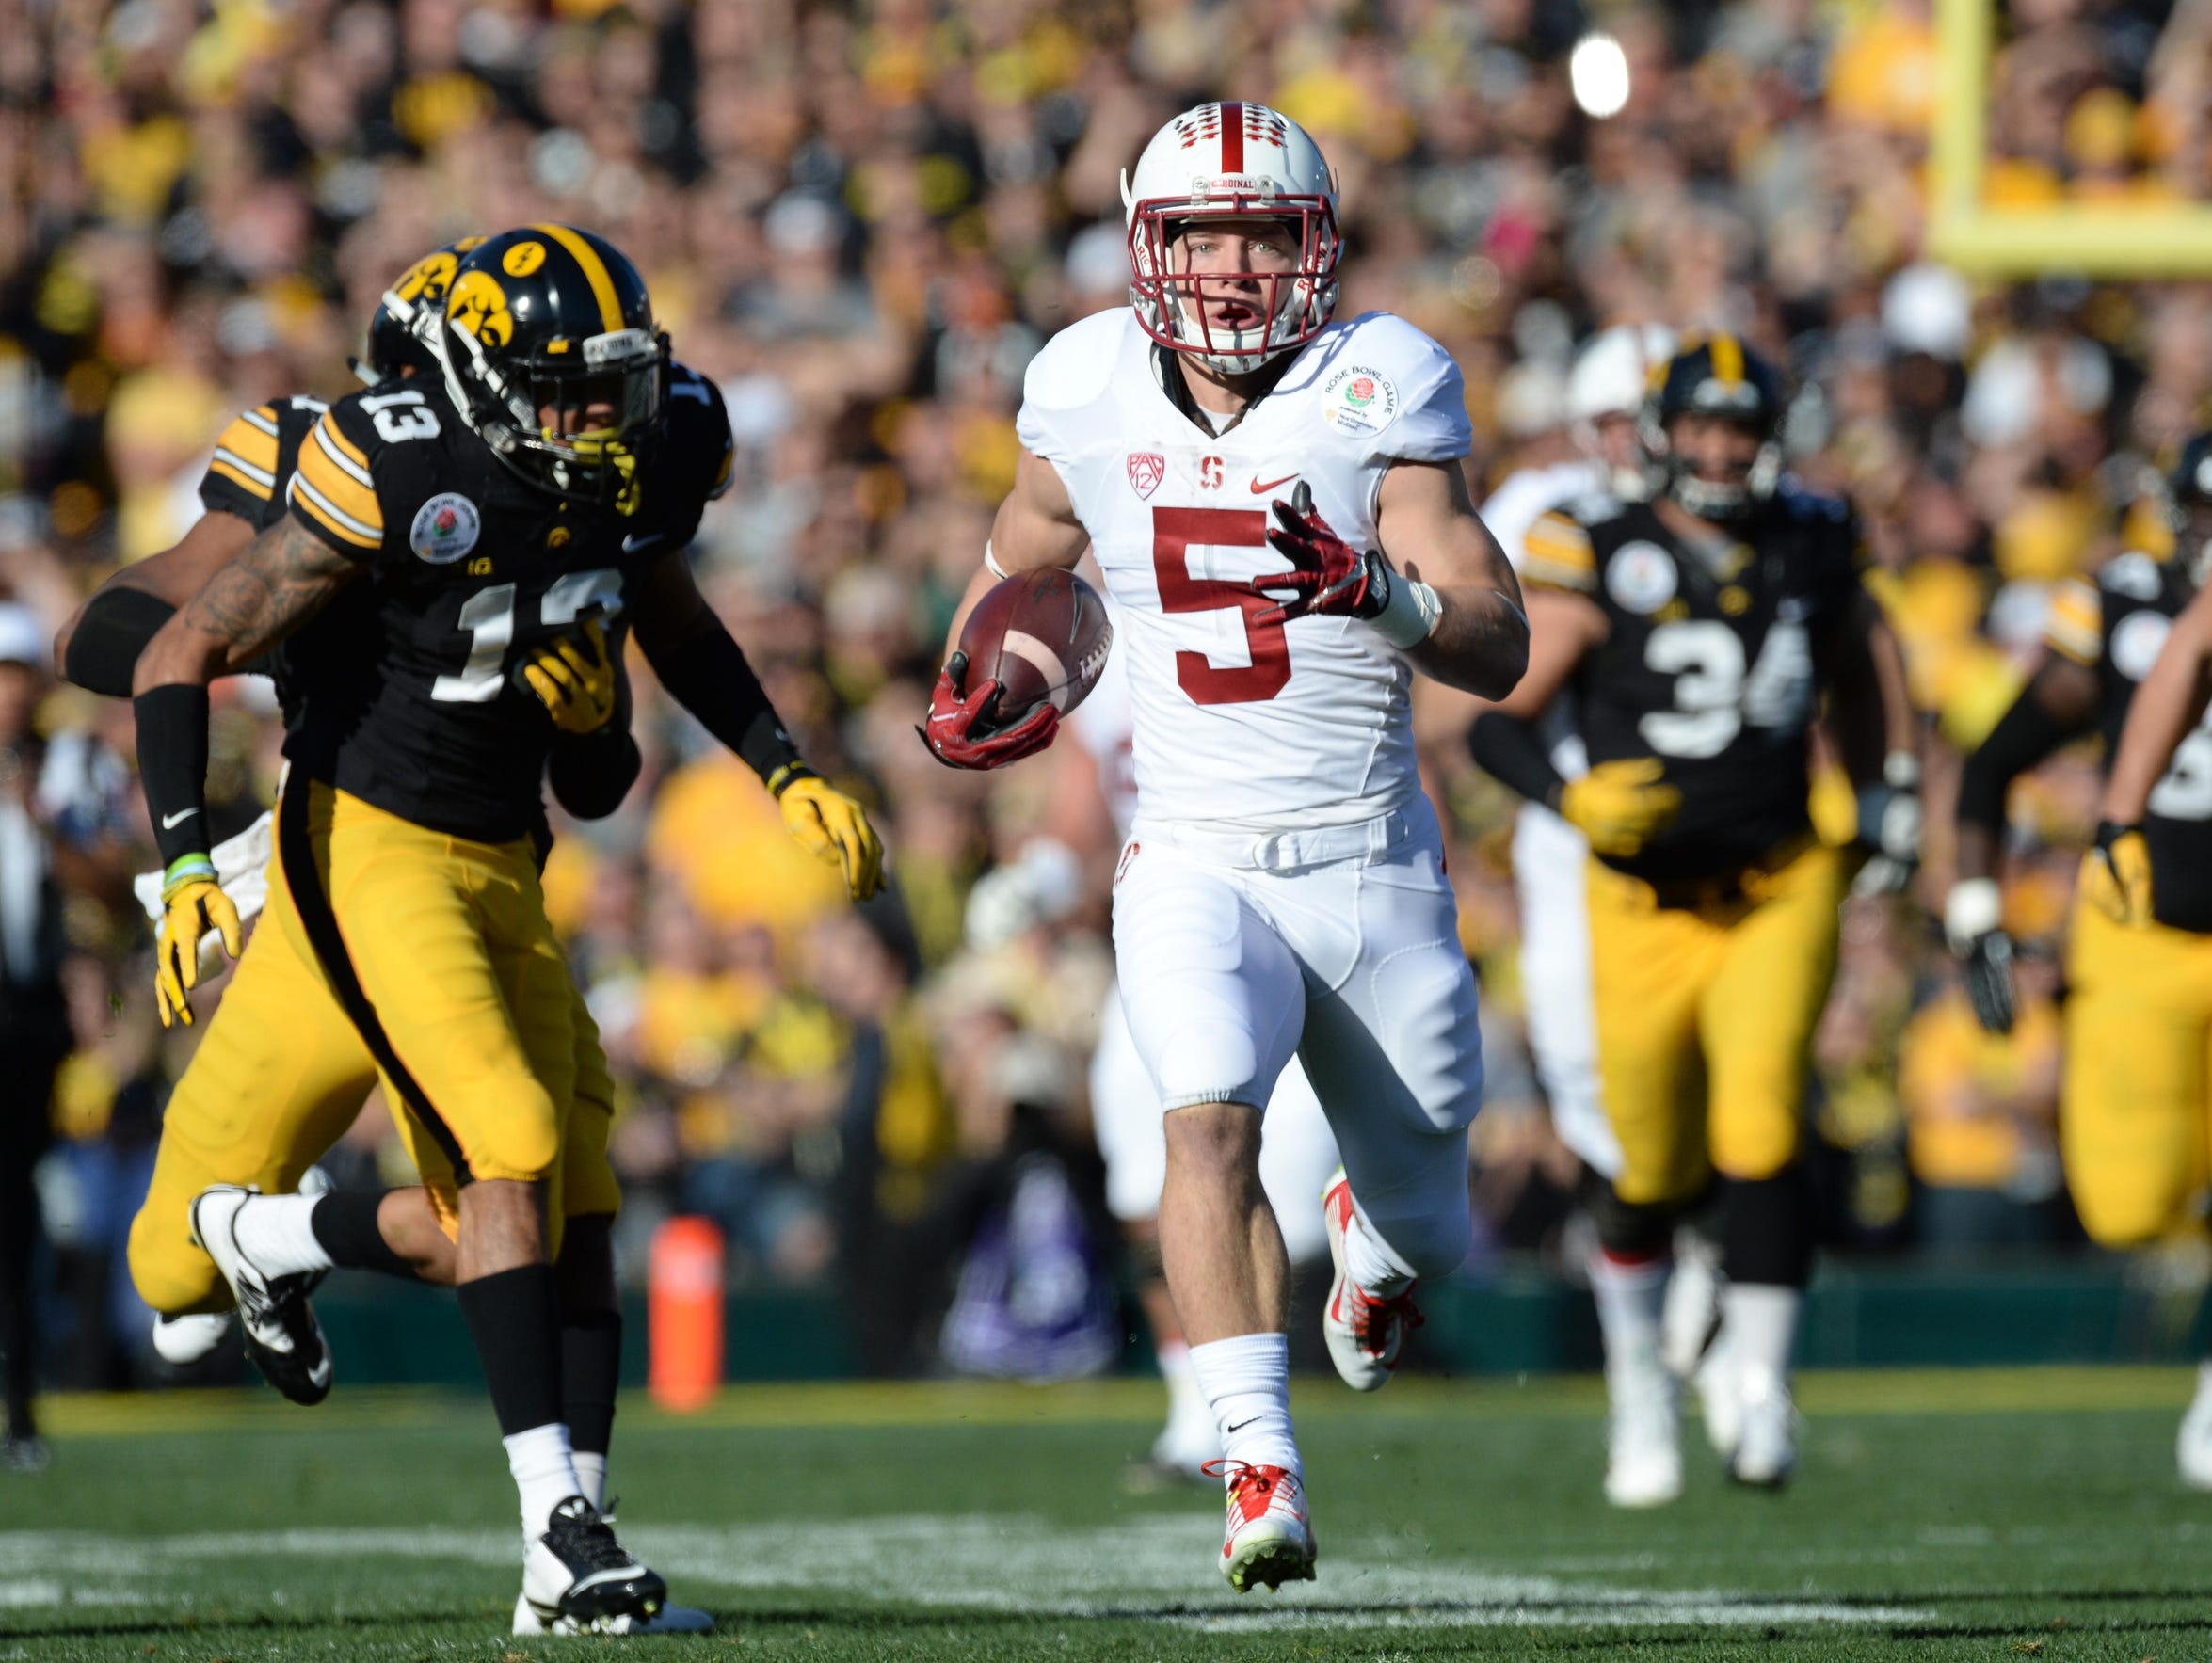 McCaffrey gained more yards against Iowa in the Rose